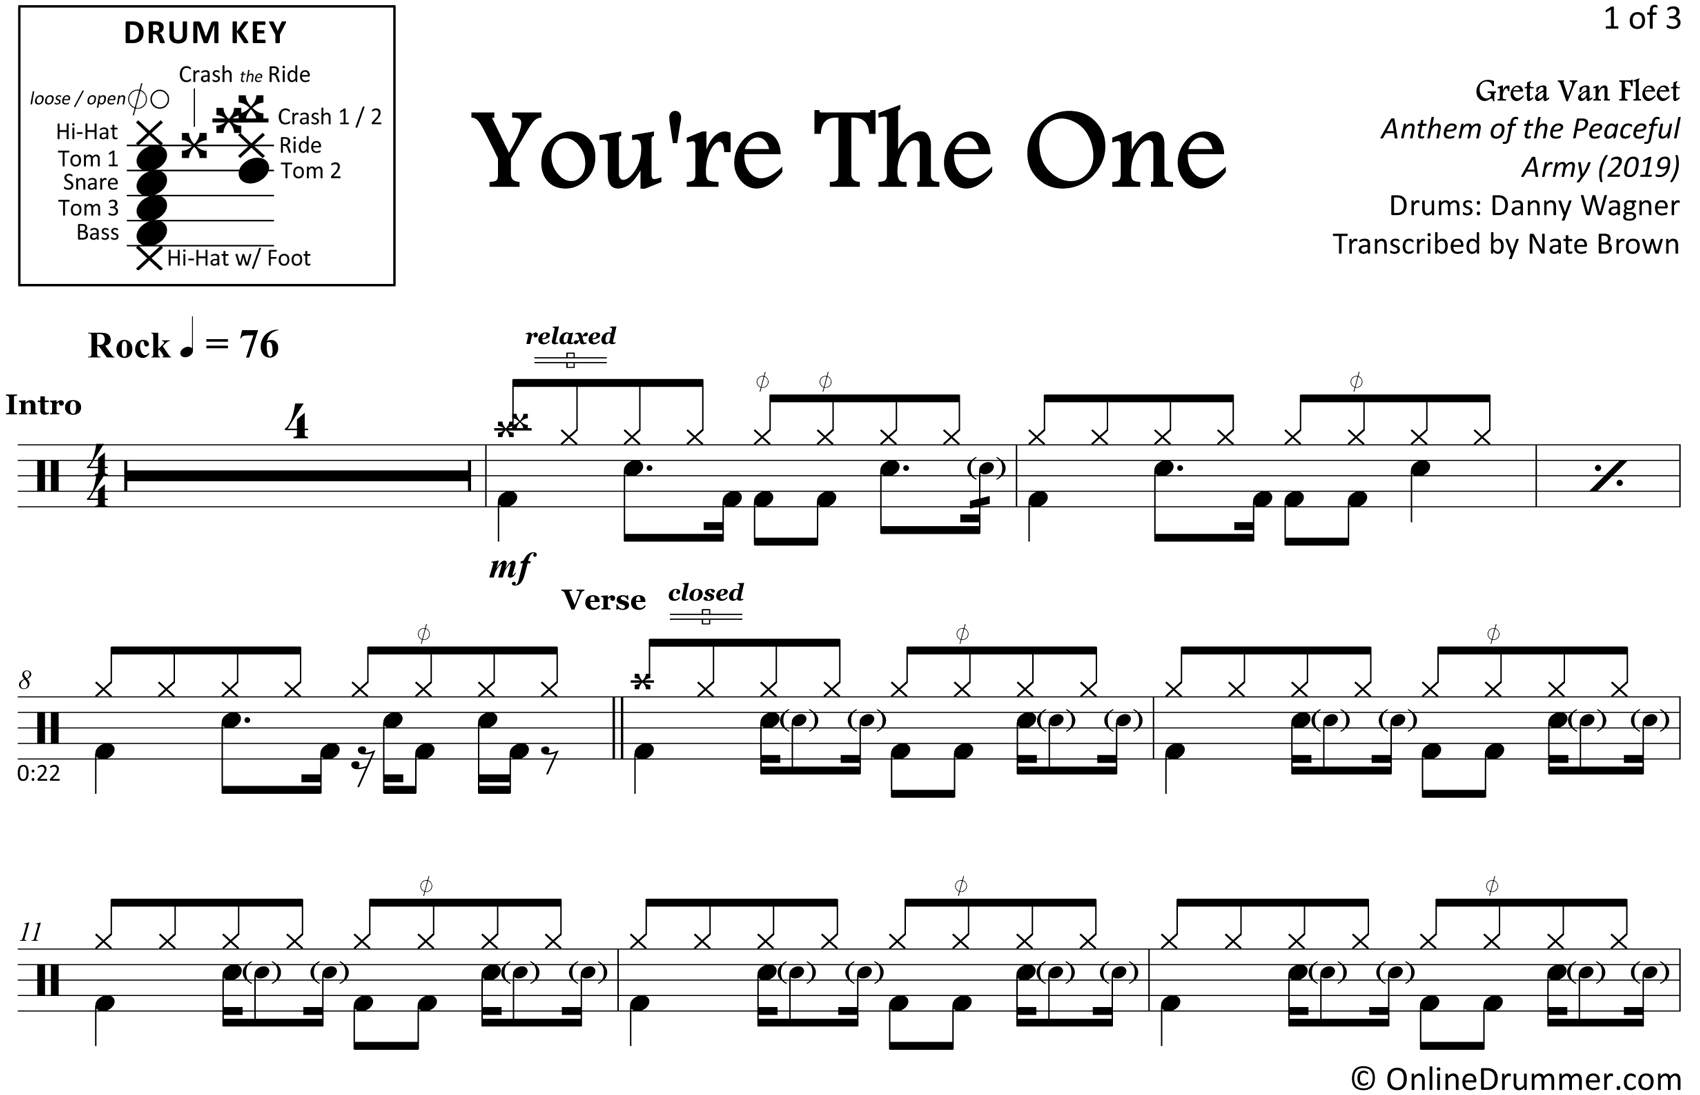 You're The One - Greta Van Fleet - Drum Sheet Music